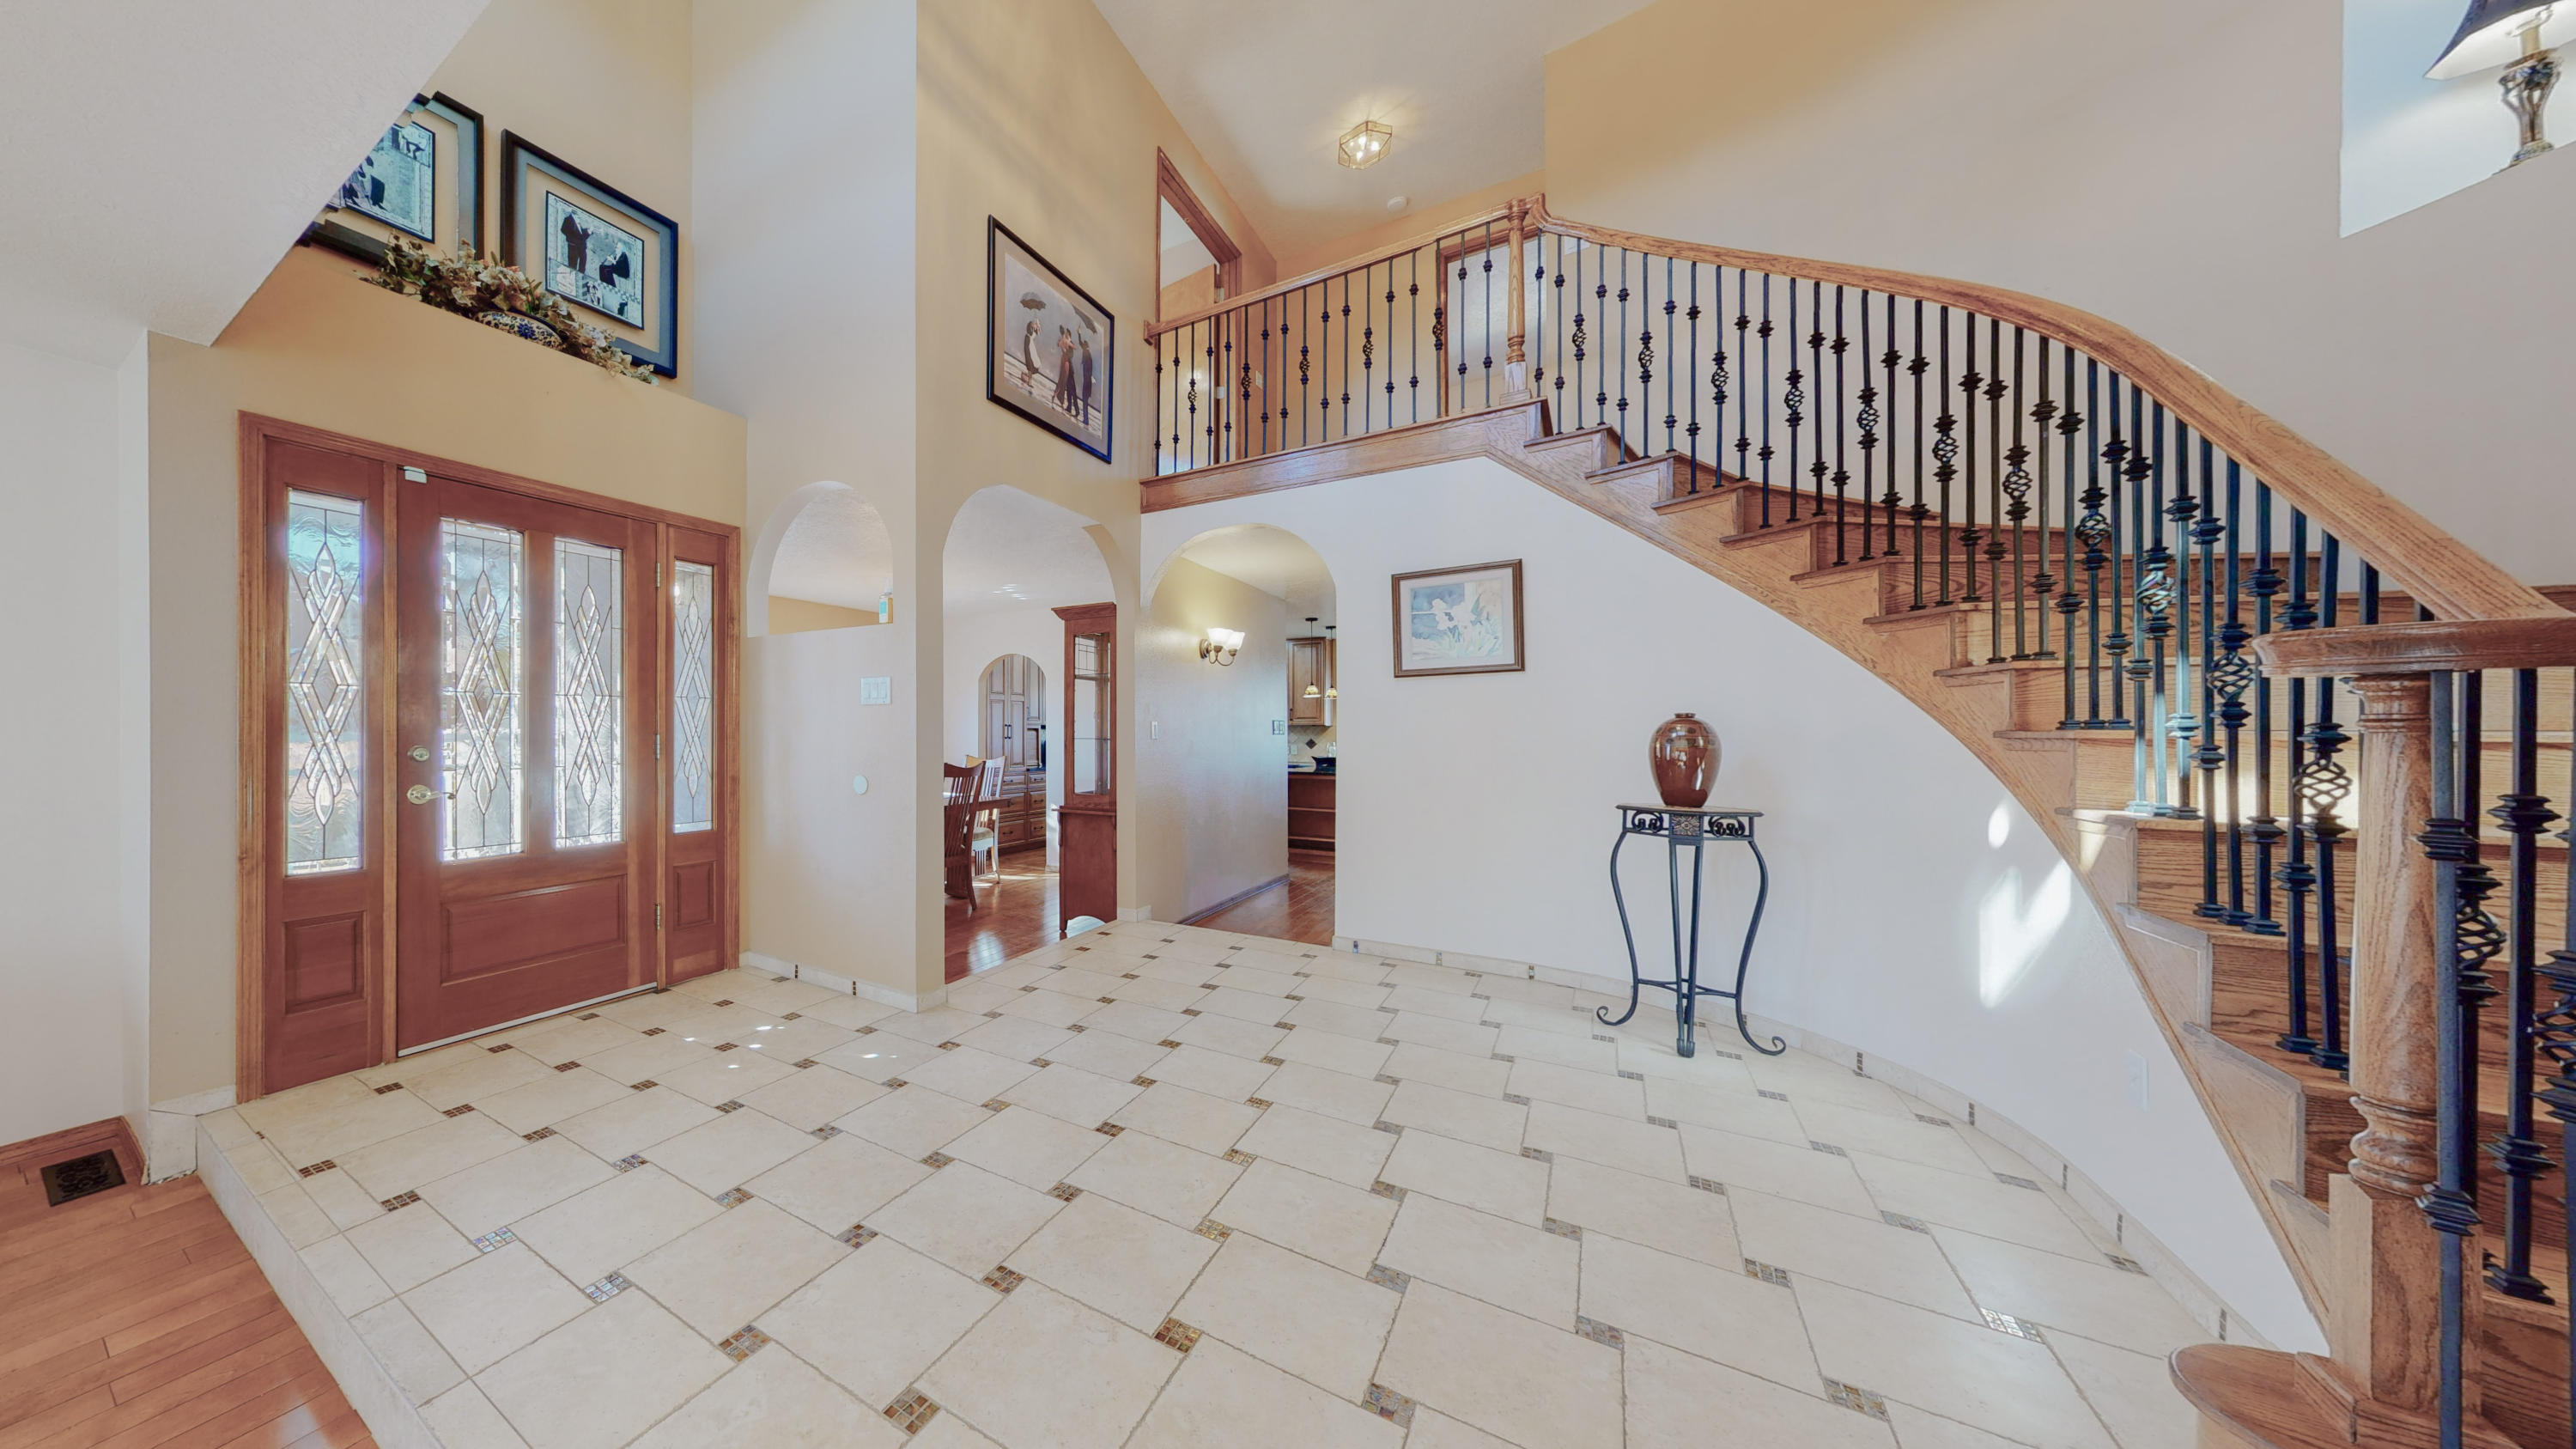 Welcome home to this Lovely 2-story with Sweeping Oak Staircase that leads to a spacious Master bedroom with En-Suite Bath, Soak the day away in the jetted tub. Enjoy Sunset Views off Private Balcony, Gorgeous Updated Kitchen W/Granite Countertops, Maple Custom Cabinets, Solid Wood Floors in LR,Loft, Dining. Radiant Baseboard Heating,Cozy up to the Gas Fireplace W/Blower, Backyard access, parking for RV, Mature Landscaping and Low Maintenance Turf in Backyard, 45 Gal. Water heater less than 1-year old, Stucco & Windows 5yrs. old, Over sized 2-Car Garage W/Workshop, Security Gate at Entry